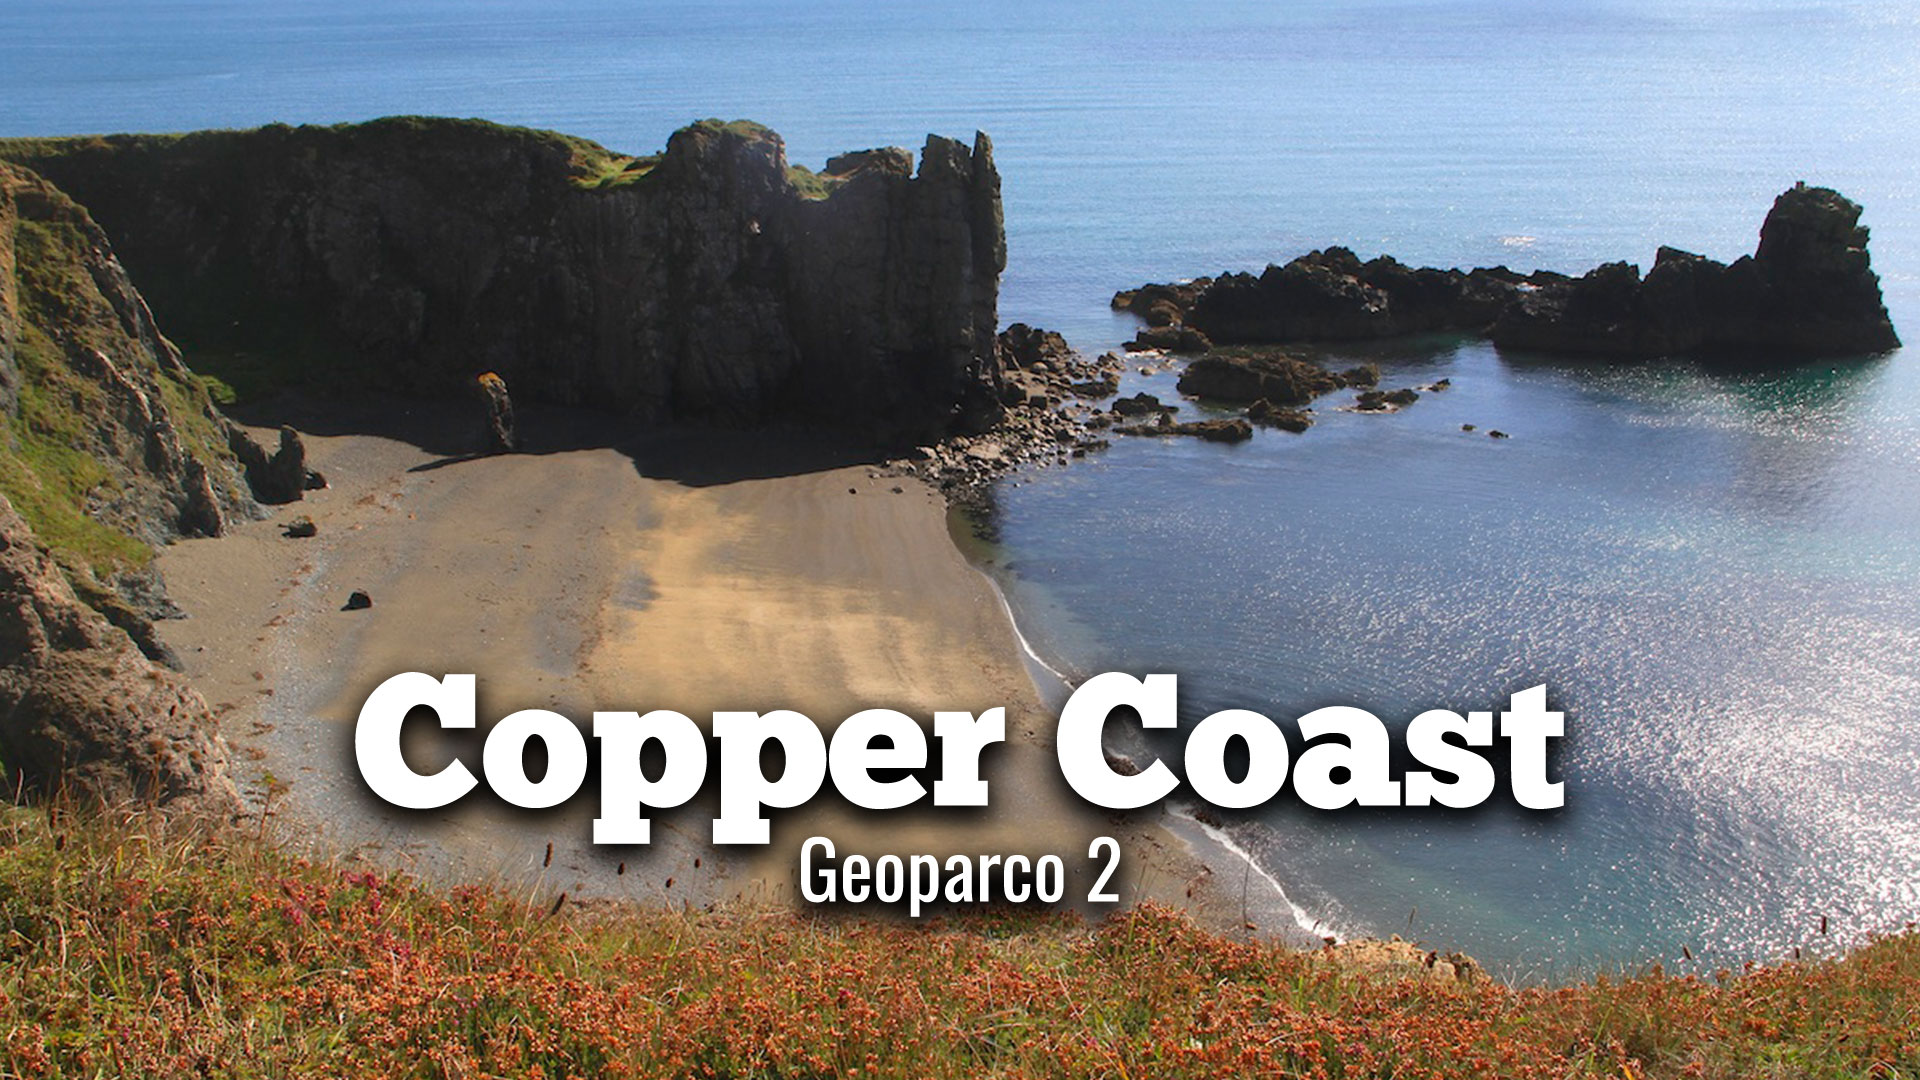 Copper Coast – Geoparco 2